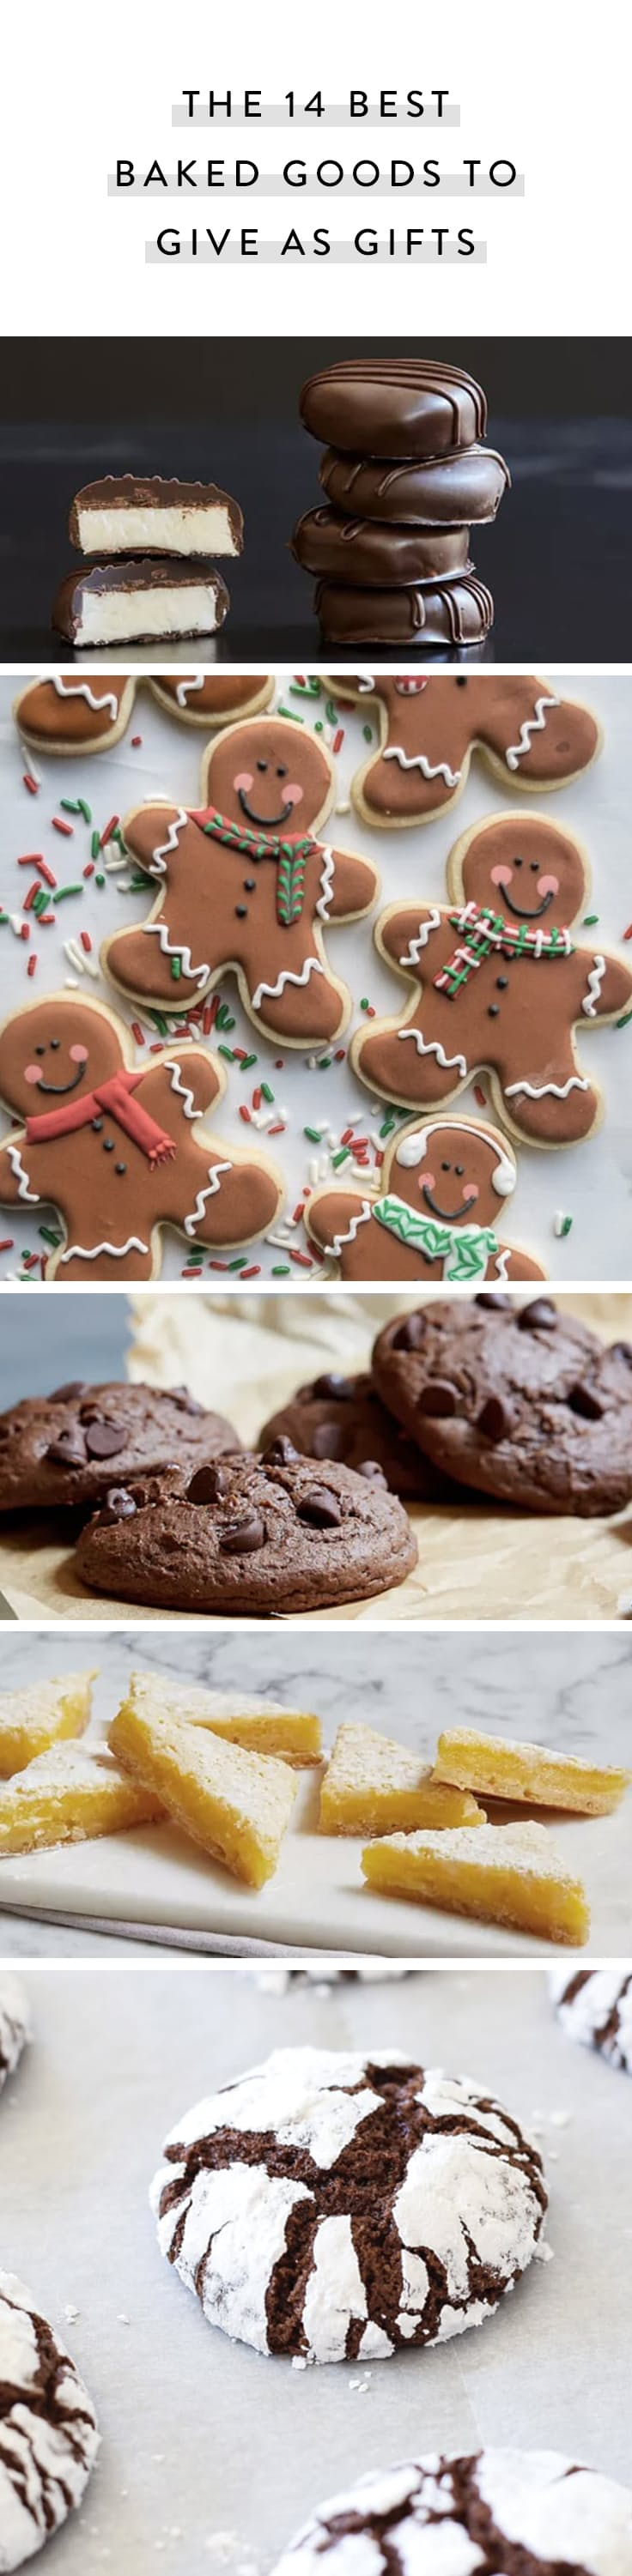 The 14 Best Baked Goods to Give as Gifts via @PureWow